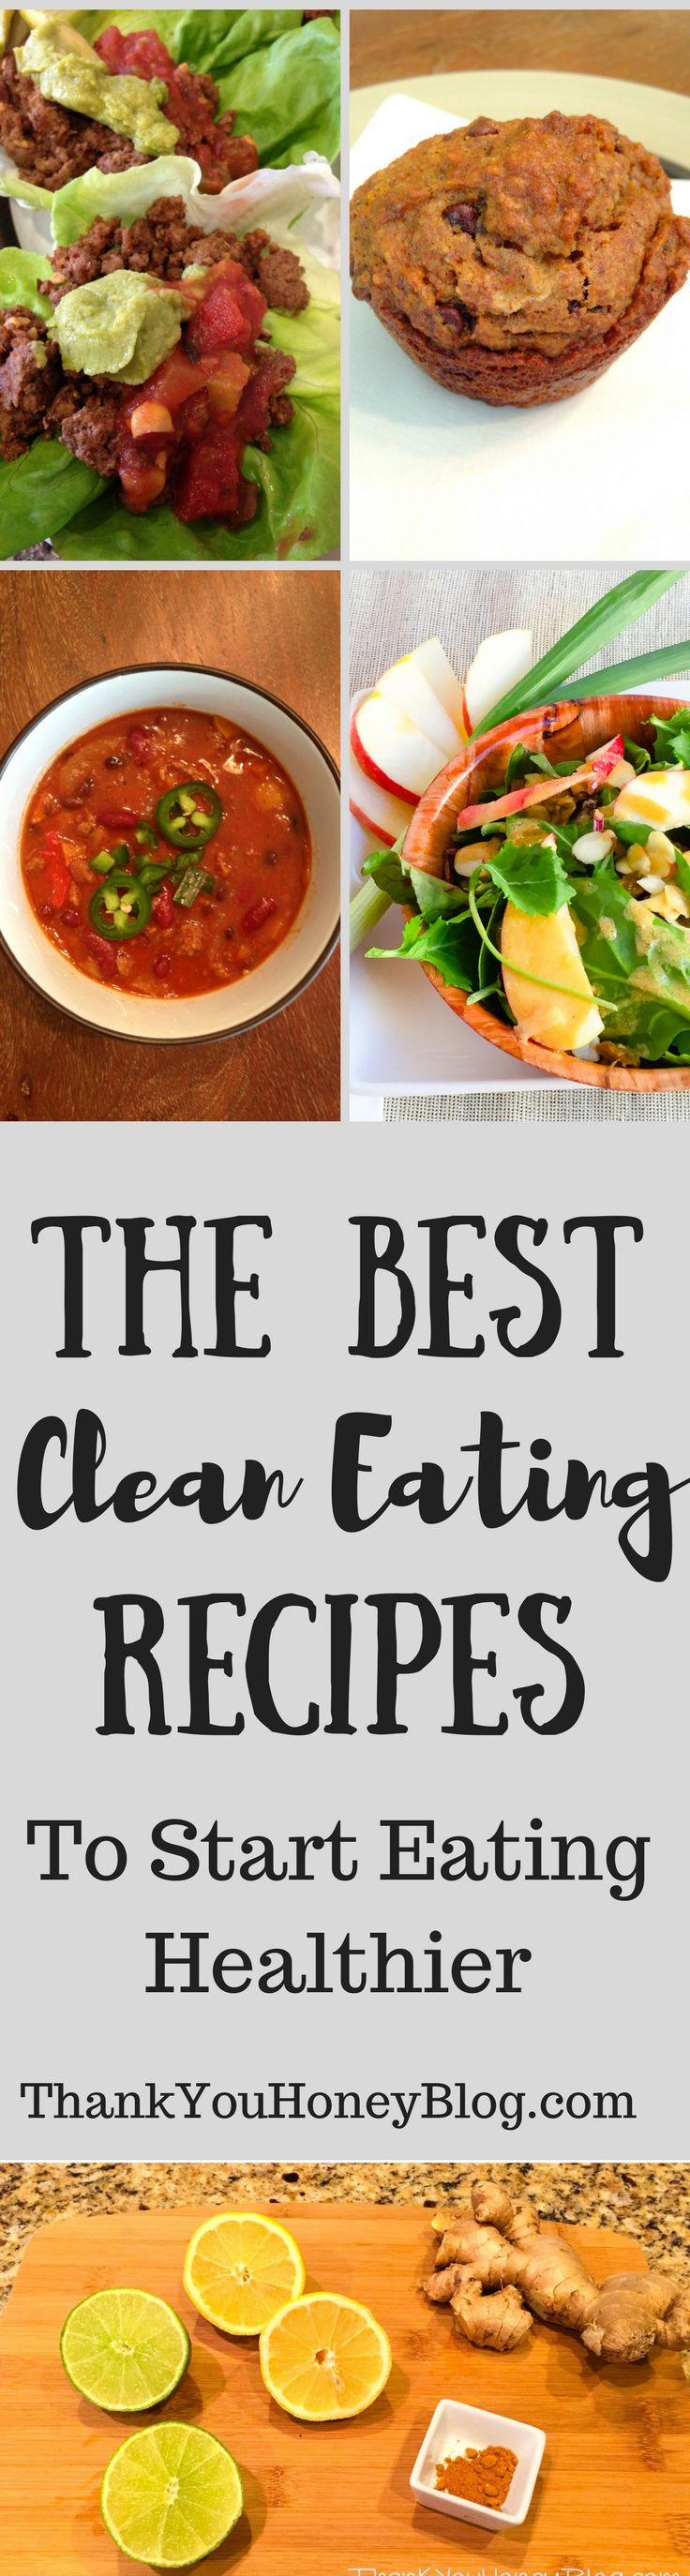 Clean Eating, Diet, Lifestyle, Changes, New Year, The Best Clean Eating Recipes to Start Eating Healthier, Eating Right, Healthy Living, Eating Better, Tips